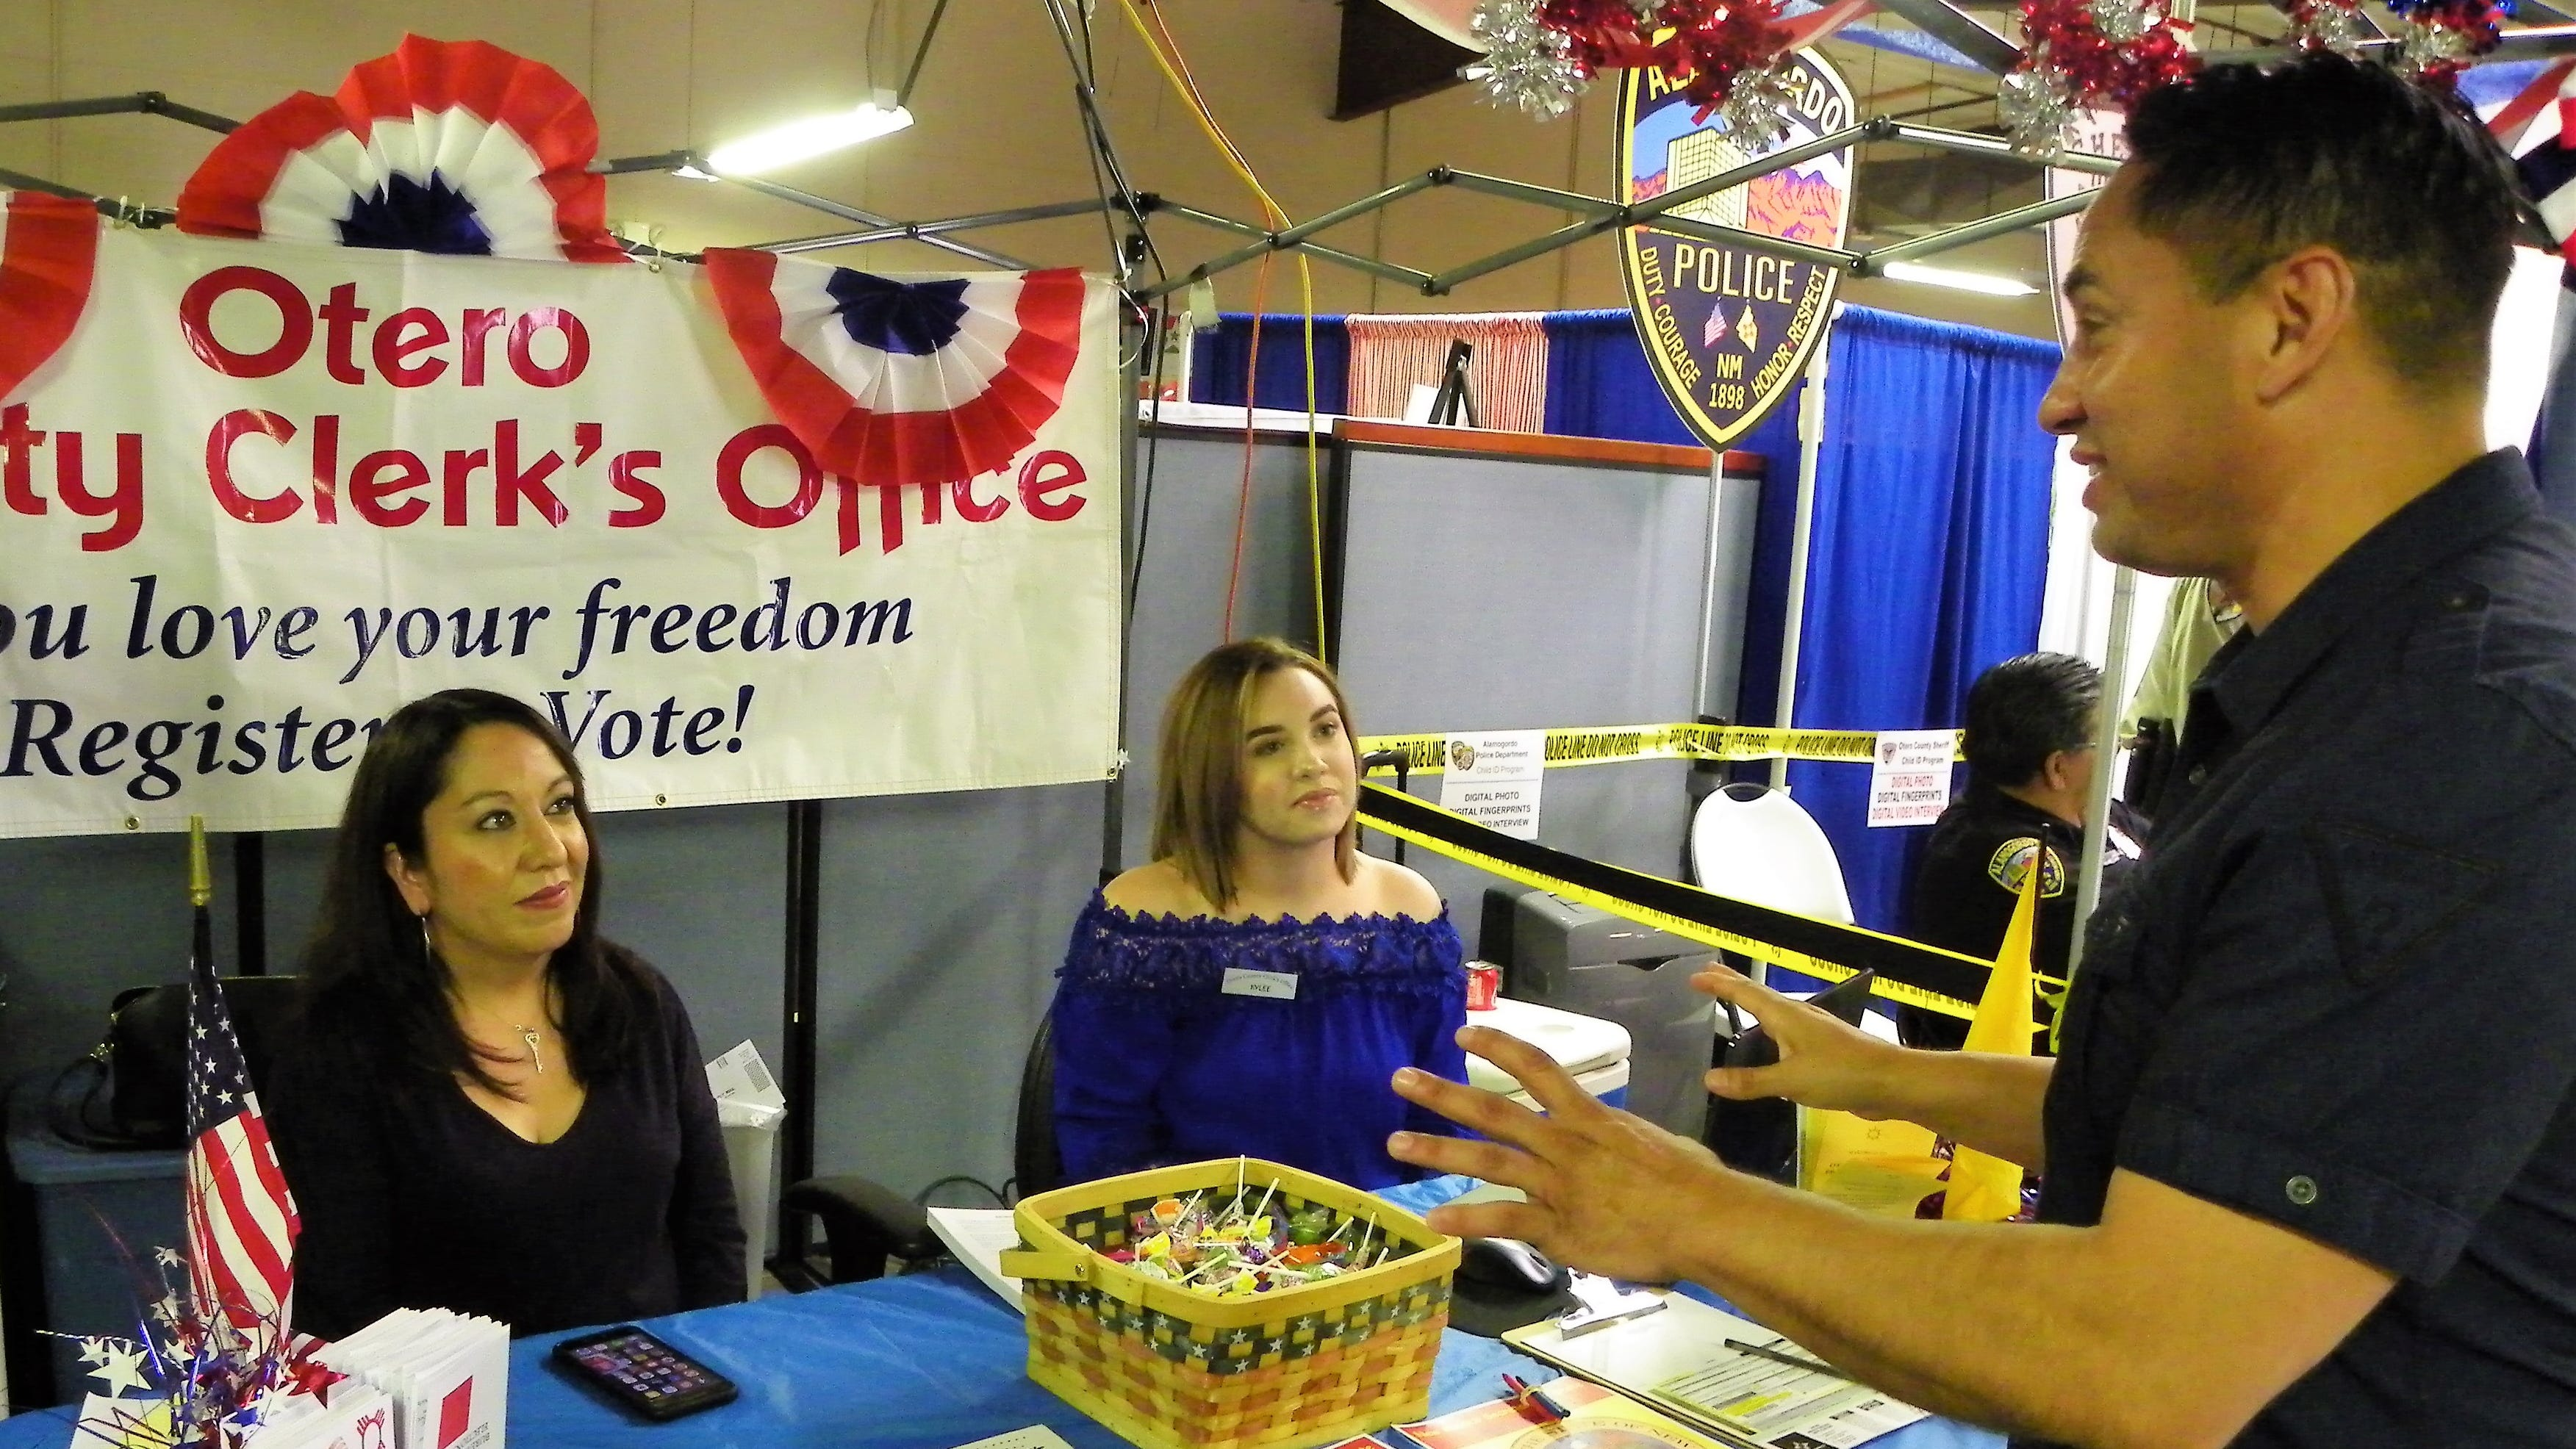 Lieutenant Governor candidate Howie Morales chats with representatives from the Otero County Fair Saturday.